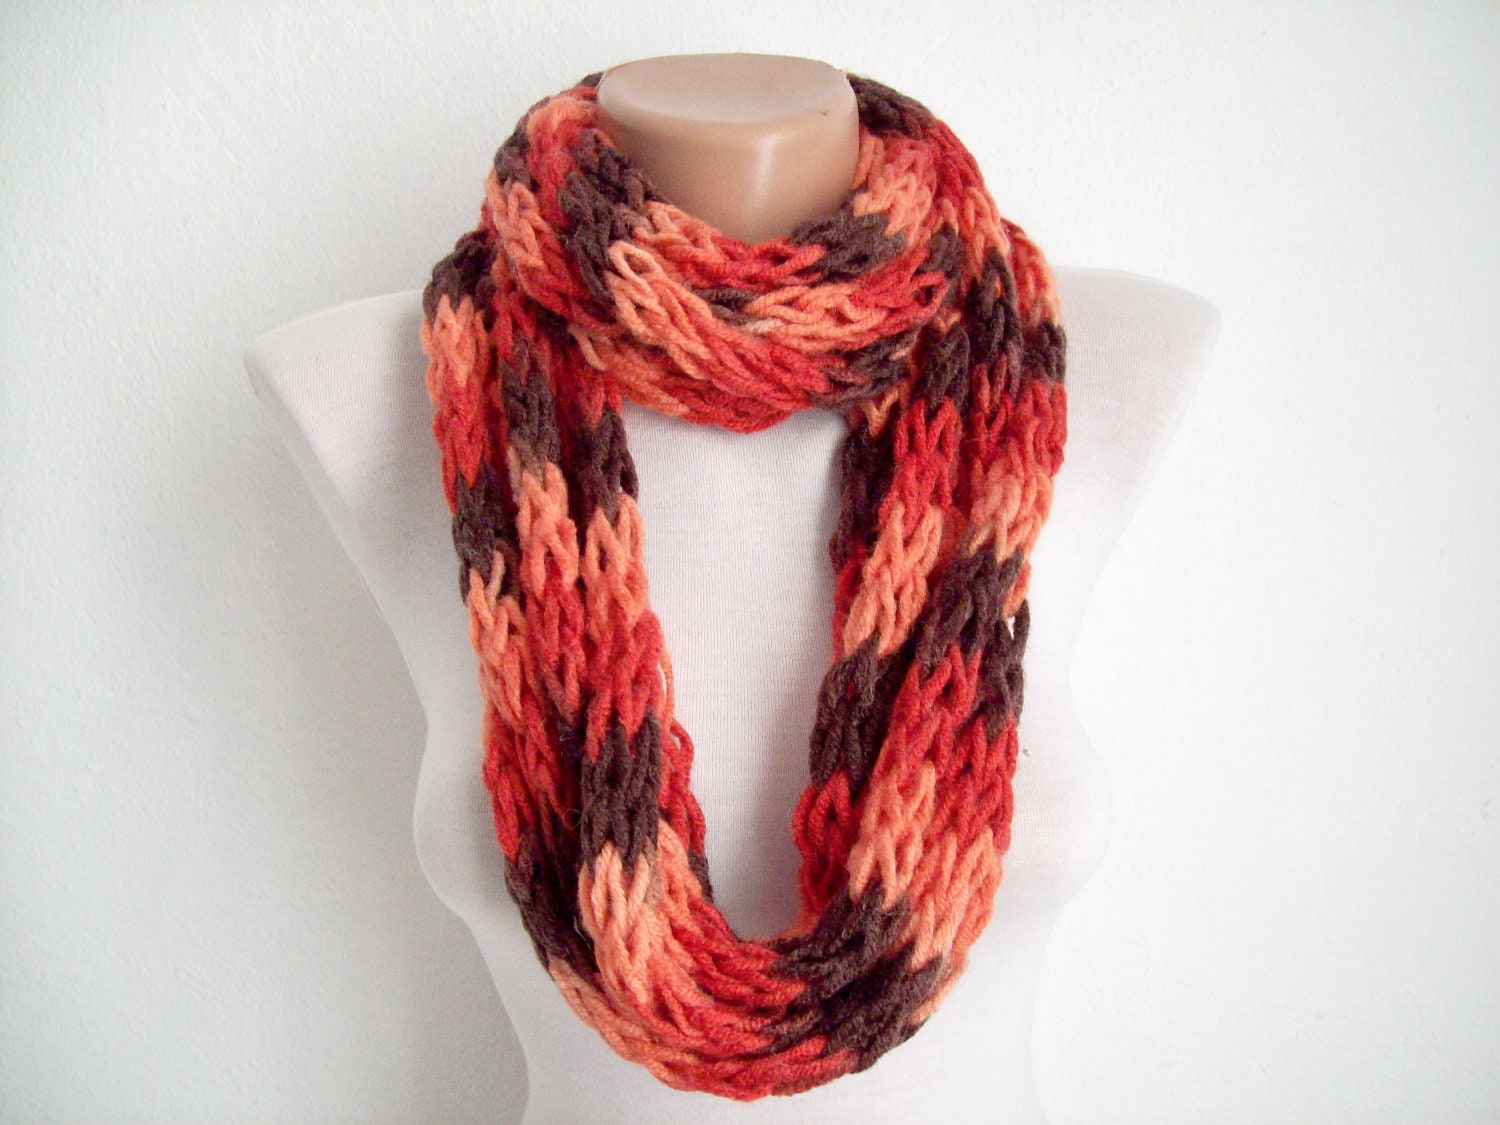 Finger Knitting Scarf : Finger knitting scarf red brown multicolor necklace colorful